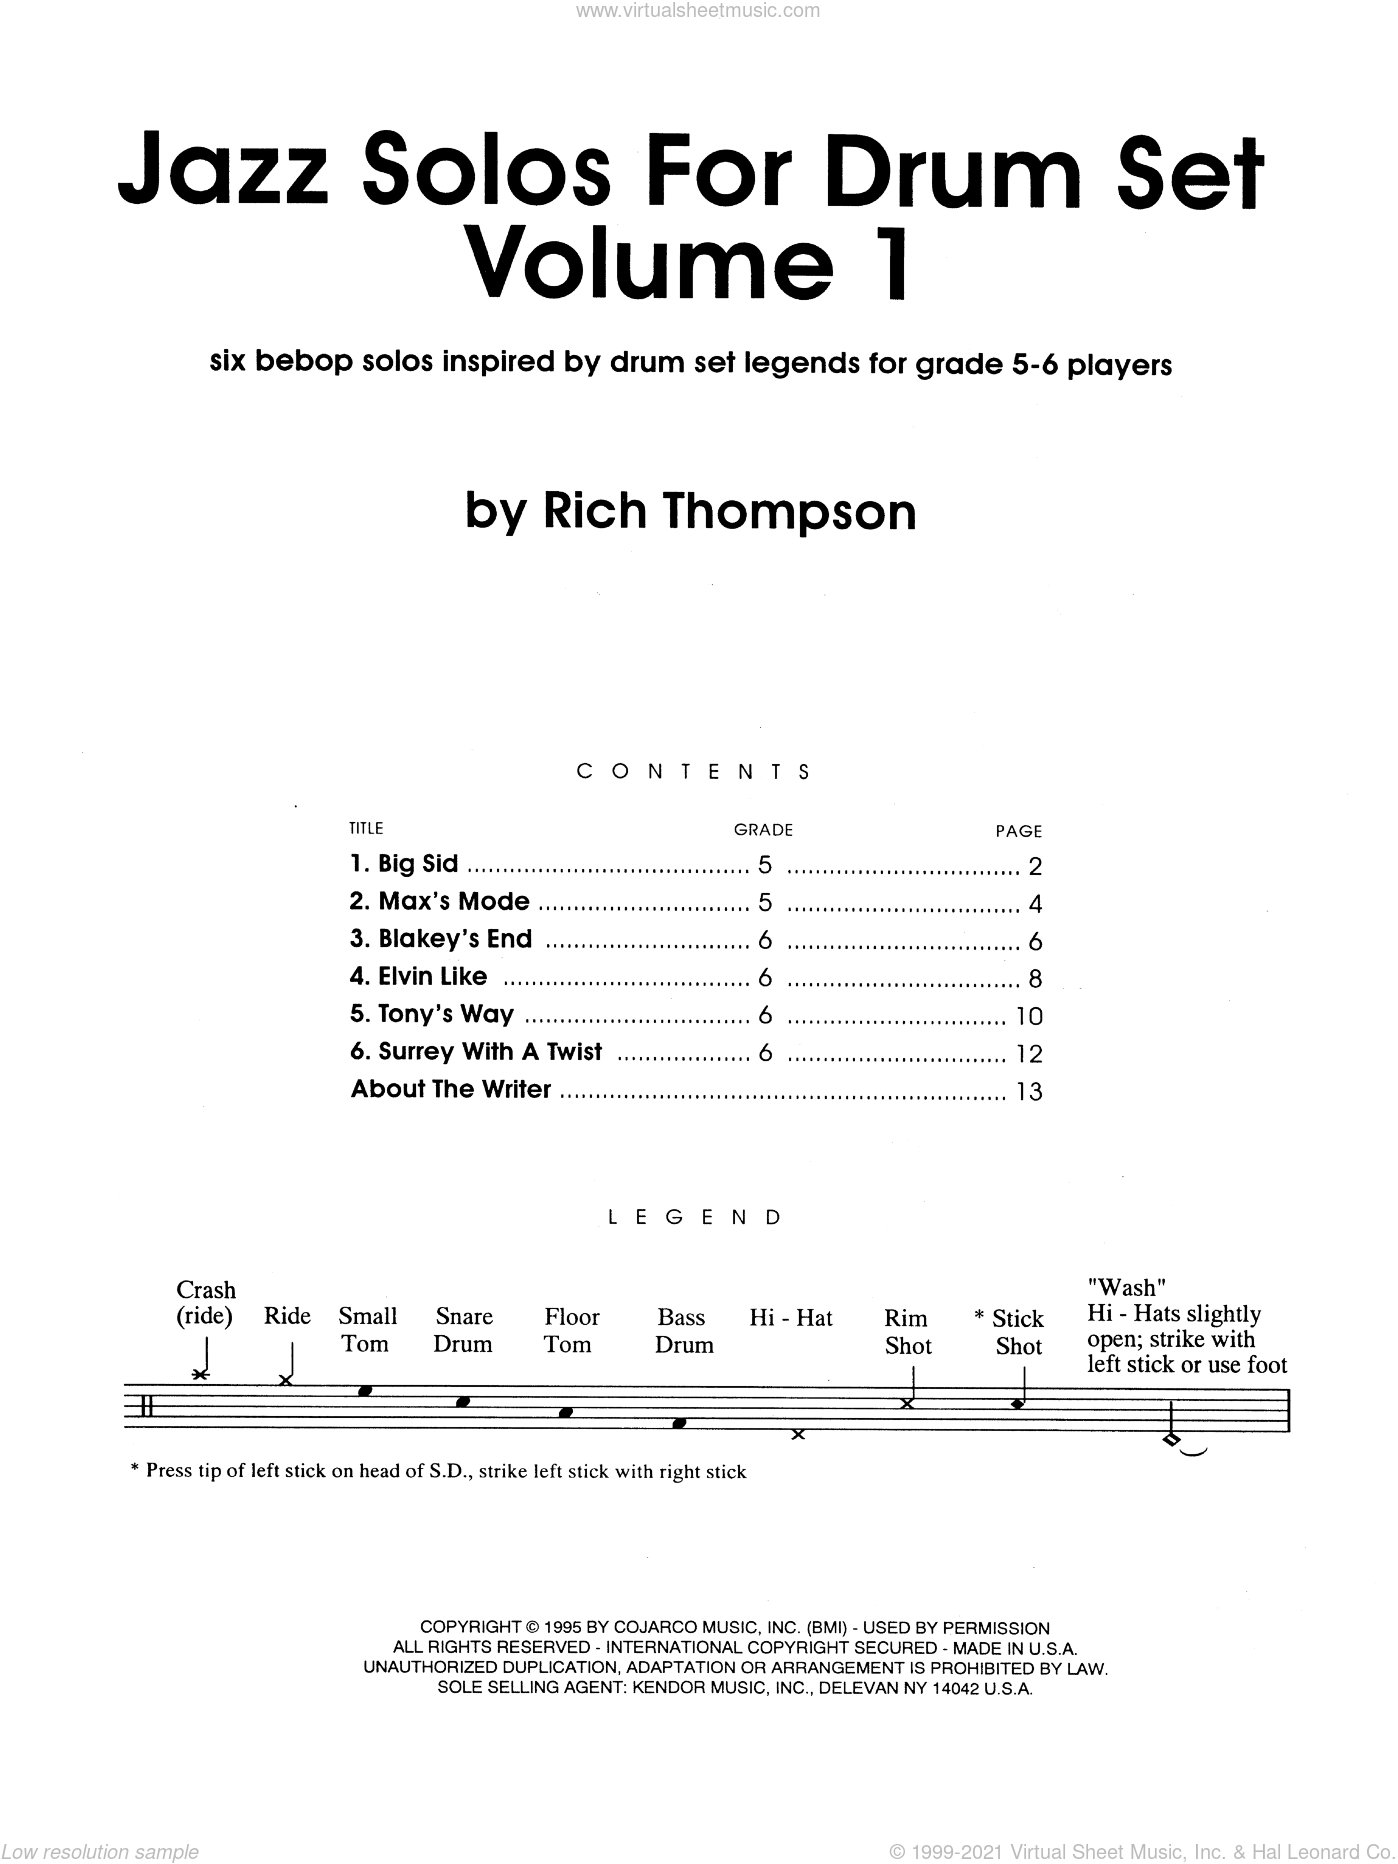 Jazz Solos For Drum Set, Volume 1 sheet music for percussions by Thompson